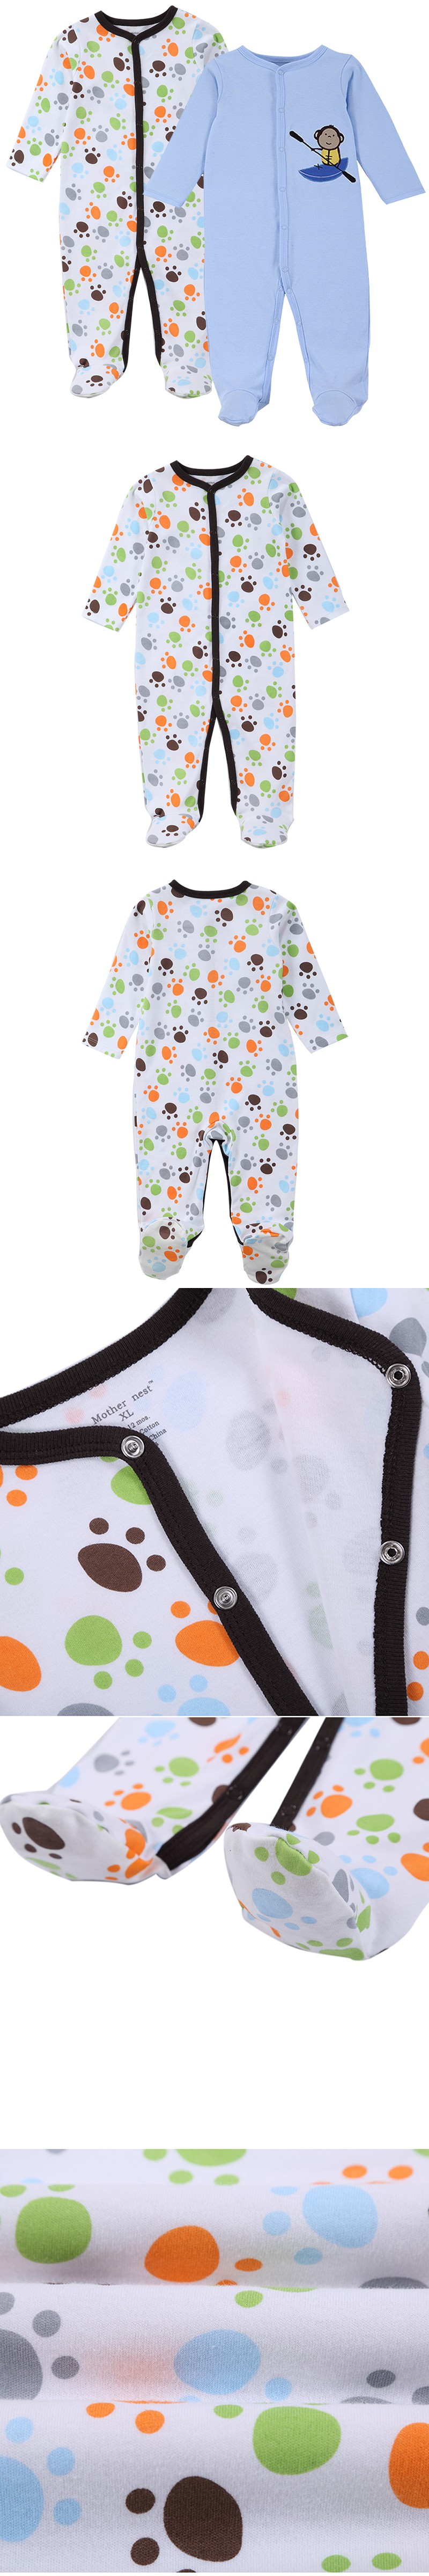 a619715fc5bd 2016 Mother Nest New Brand Baby Rompers Long Sleeves 2 Pcs Soft ...